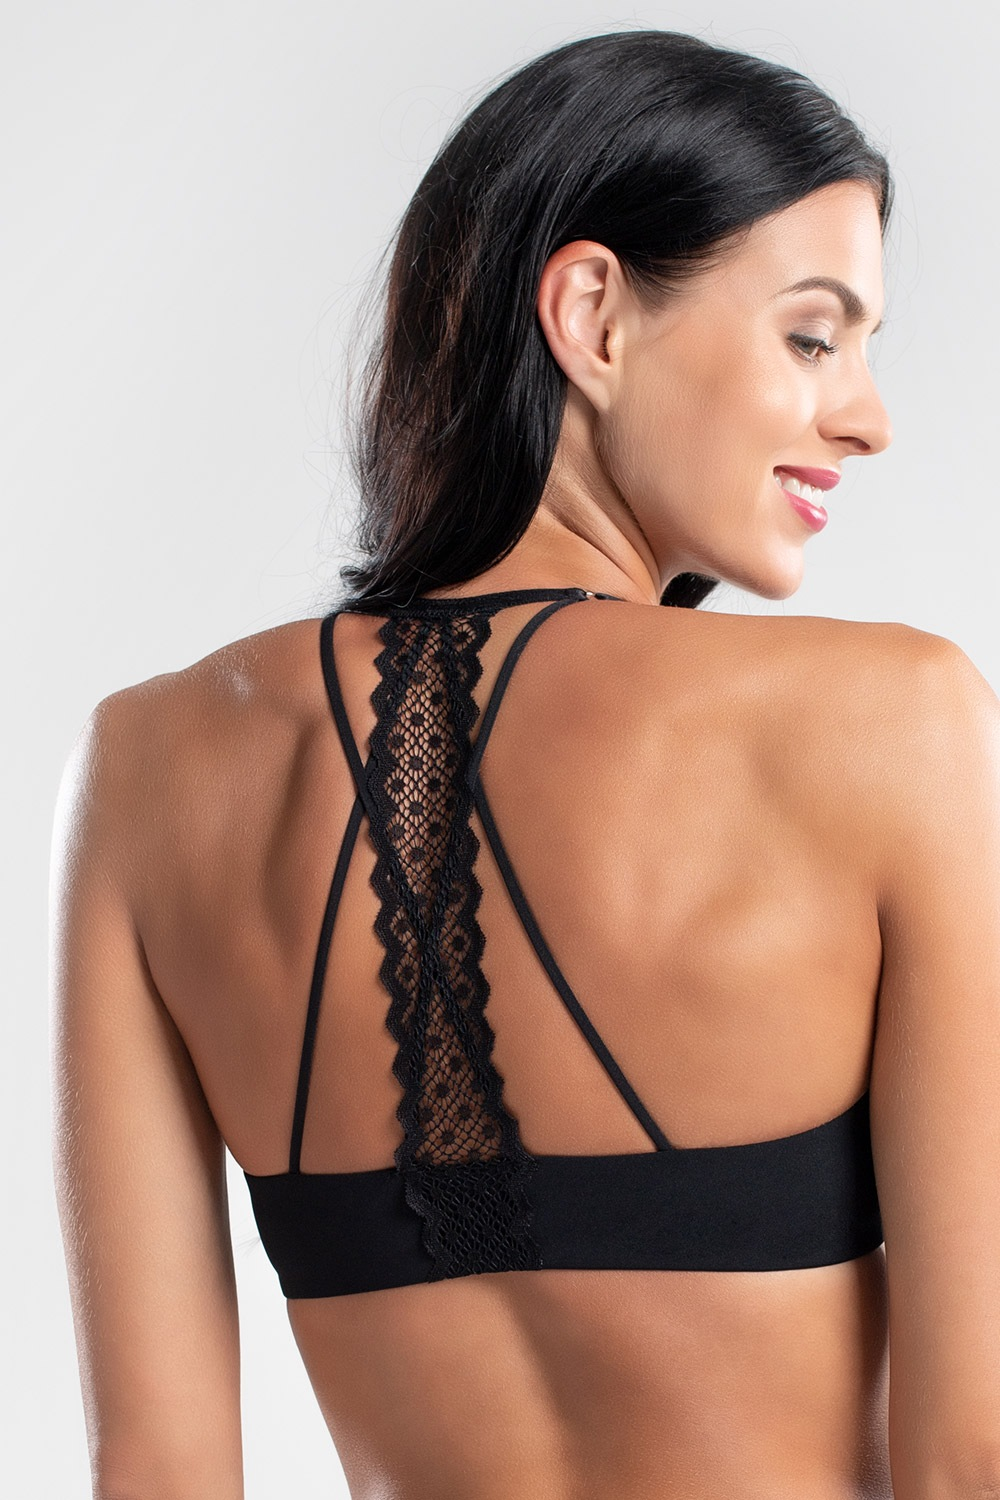 Podprsenka Mabelle Black Push-Up